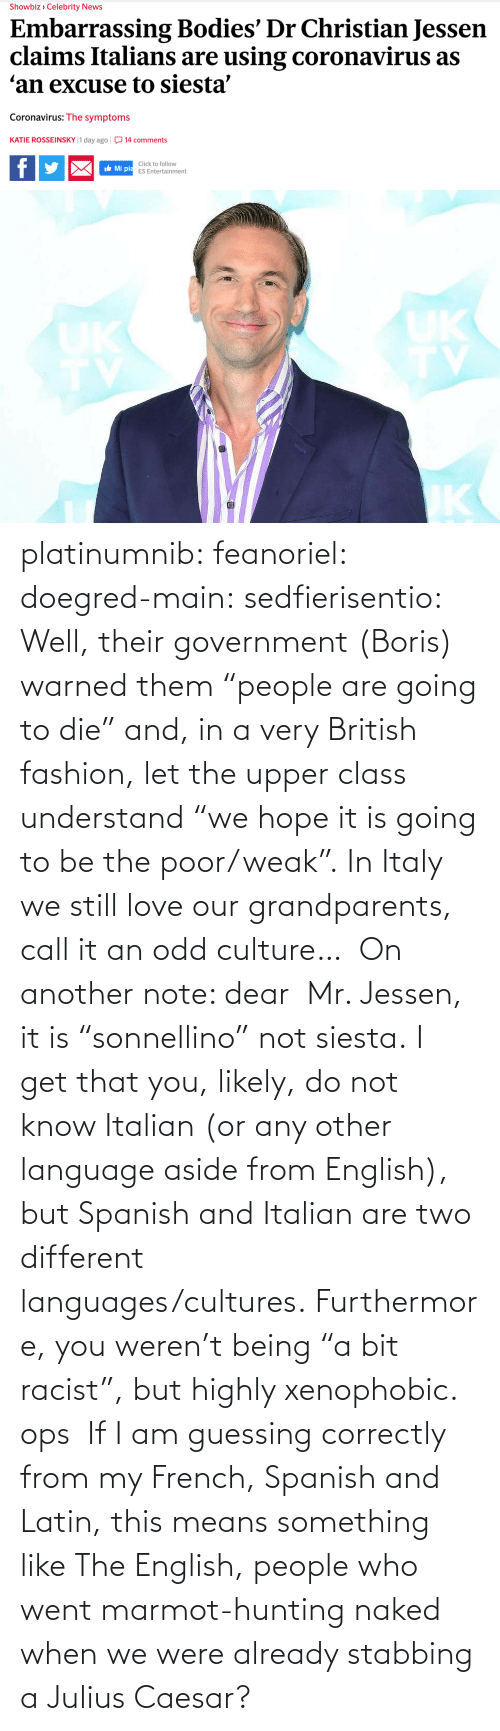 "Mr: platinumnib:  feanoriel: doegred-main:  sedfierisentio:  Well, their government (Boris) warned them ""people are going to die"" and, in a very British fashion, let the upper class understand ""we hope it is going to be the poor/weak"". In Italy we still love our grandparents, call it an odd culture…  On another note: dear  Mr. Jessen, it is ""sonnellino"" not siesta. I get that you, likely, do not know Italian (or any other language aside from English), but Spanish and Italian are two different languages/cultures. Furthermore, you weren't being ""a bit racist"", but highly xenophobic.   ops   If I am guessing correctly from my French, Spanish and Latin, this means something like The English, people who went marmot-hunting naked when we were already stabbing a Julius Caesar?"